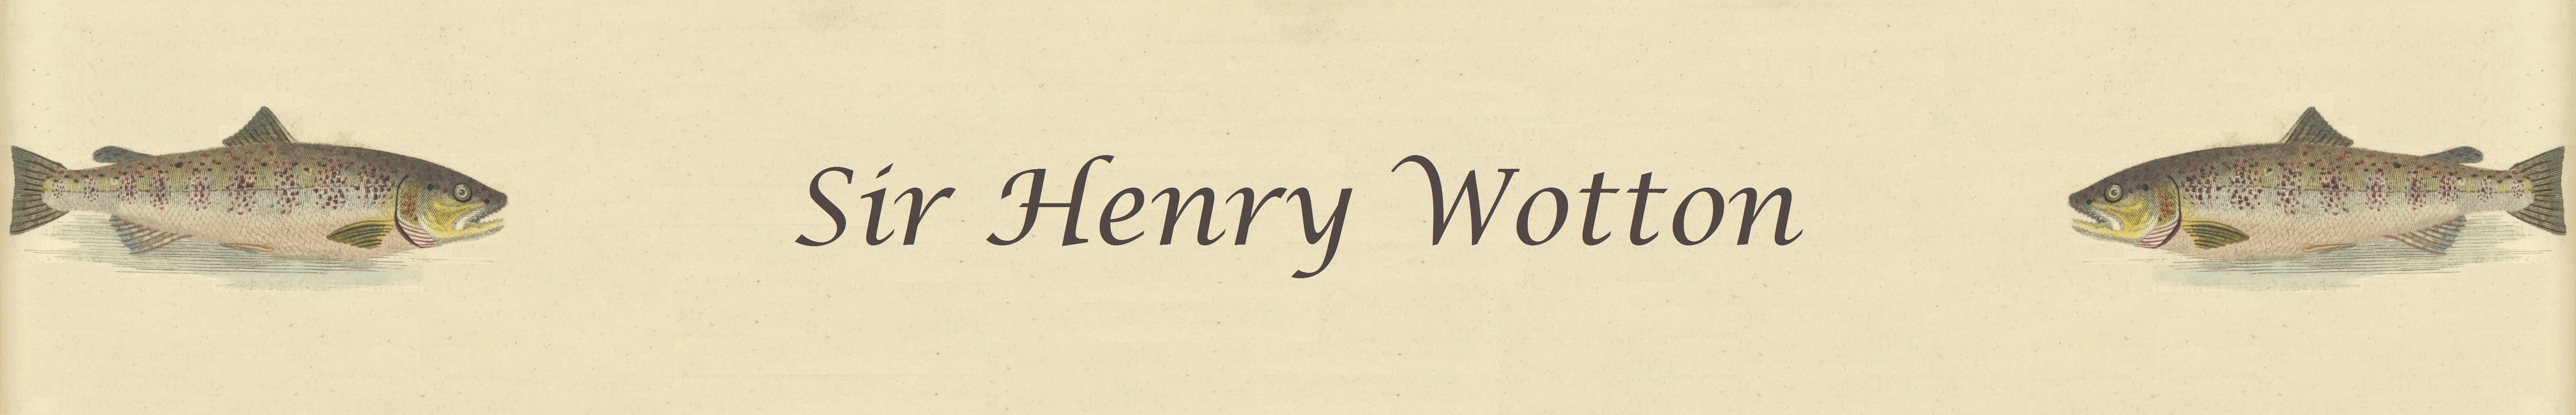 Sir Henry Wotton Banner